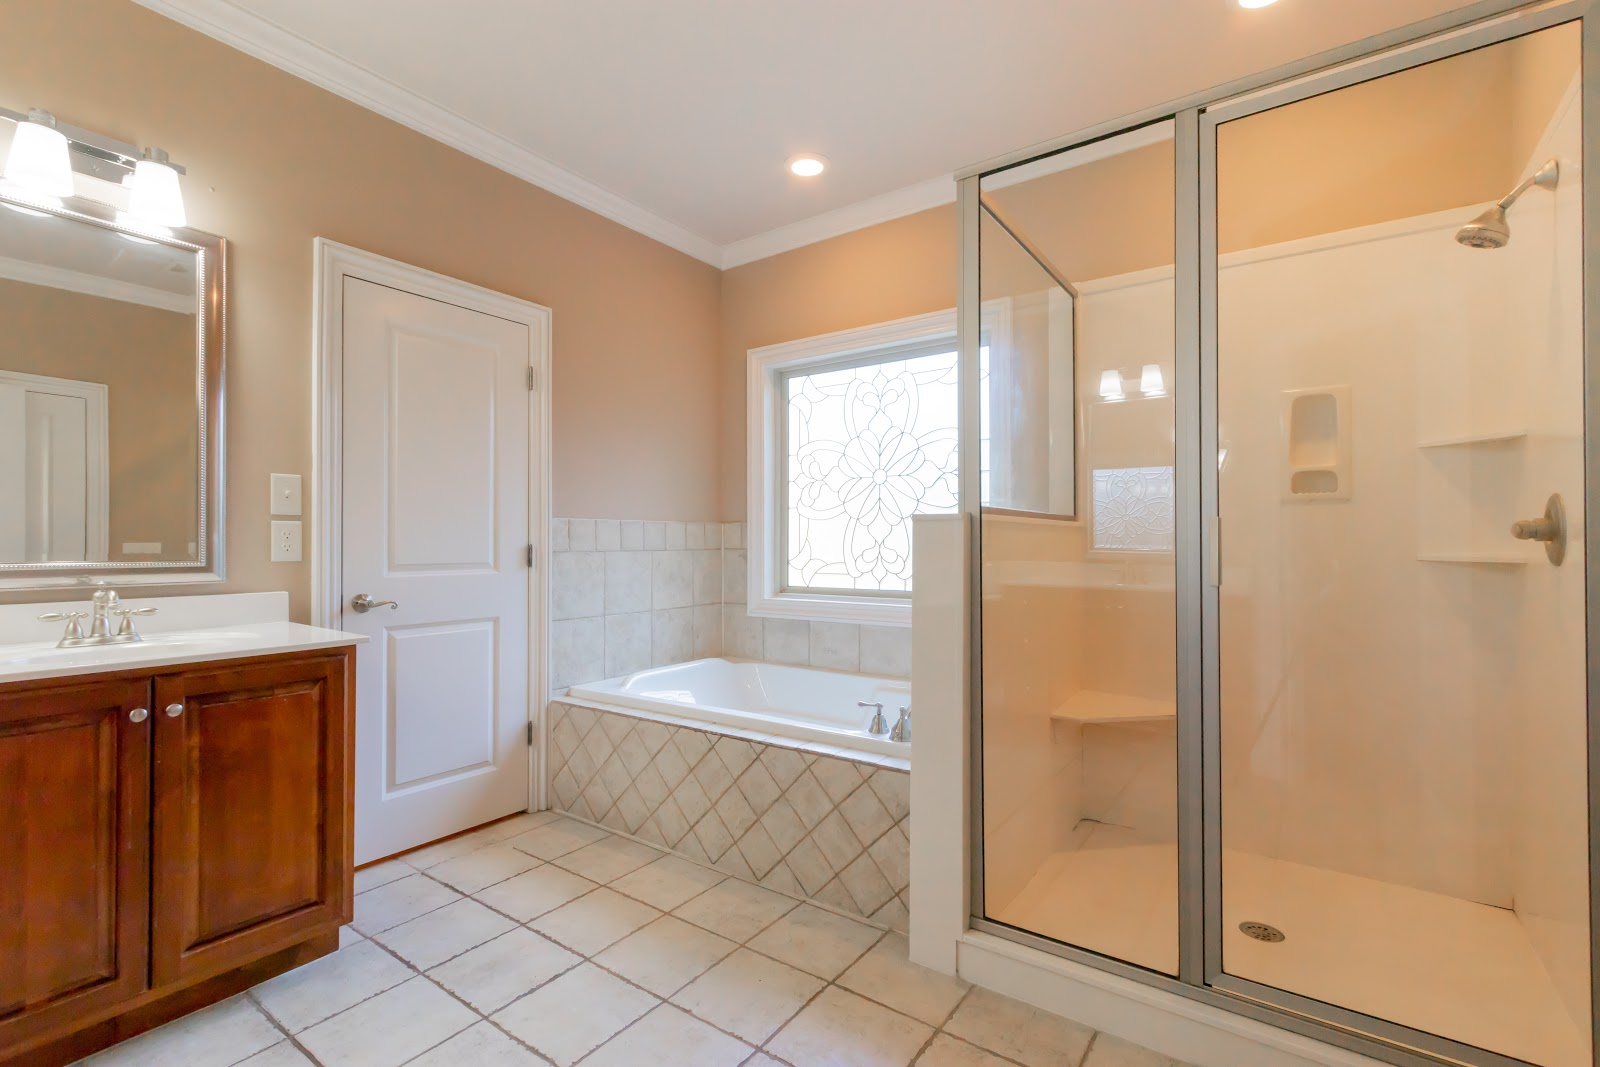 Cleaning the bathroom so it shines is the first step in staging your master bathroom